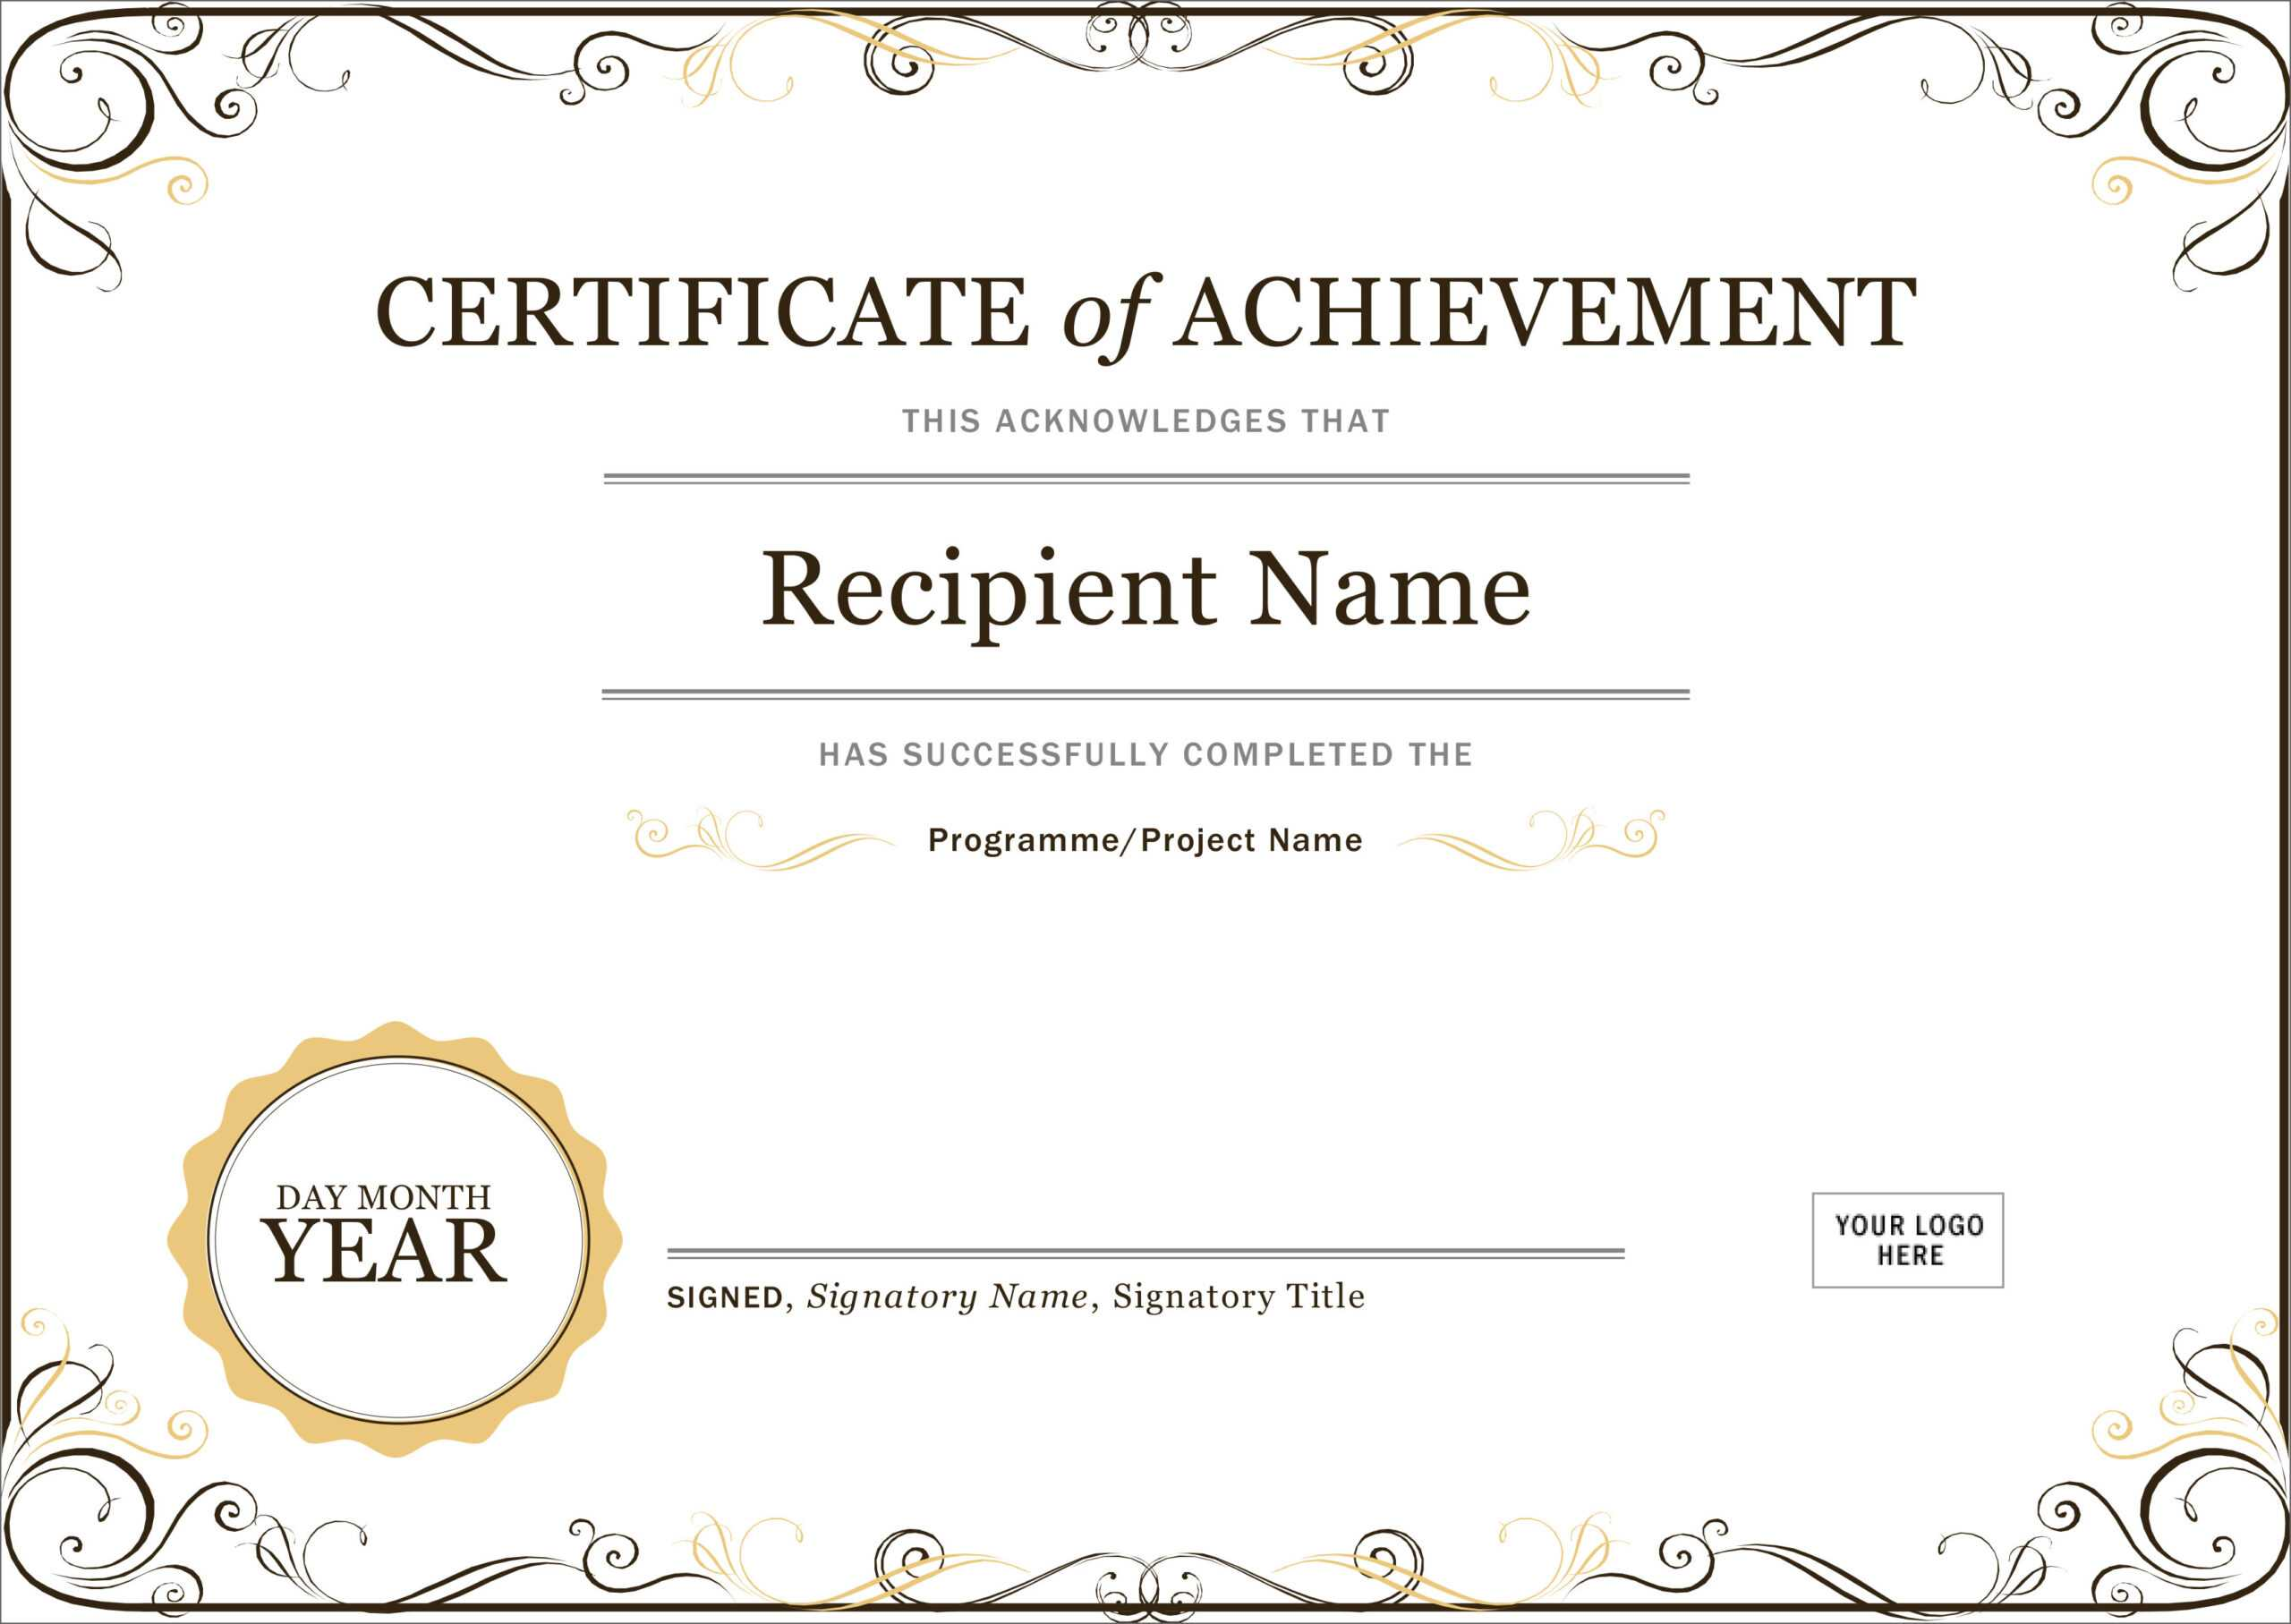 50 Free Creative Blank Certificate Templates In Psd Within Blank Certificate Templates Free Download